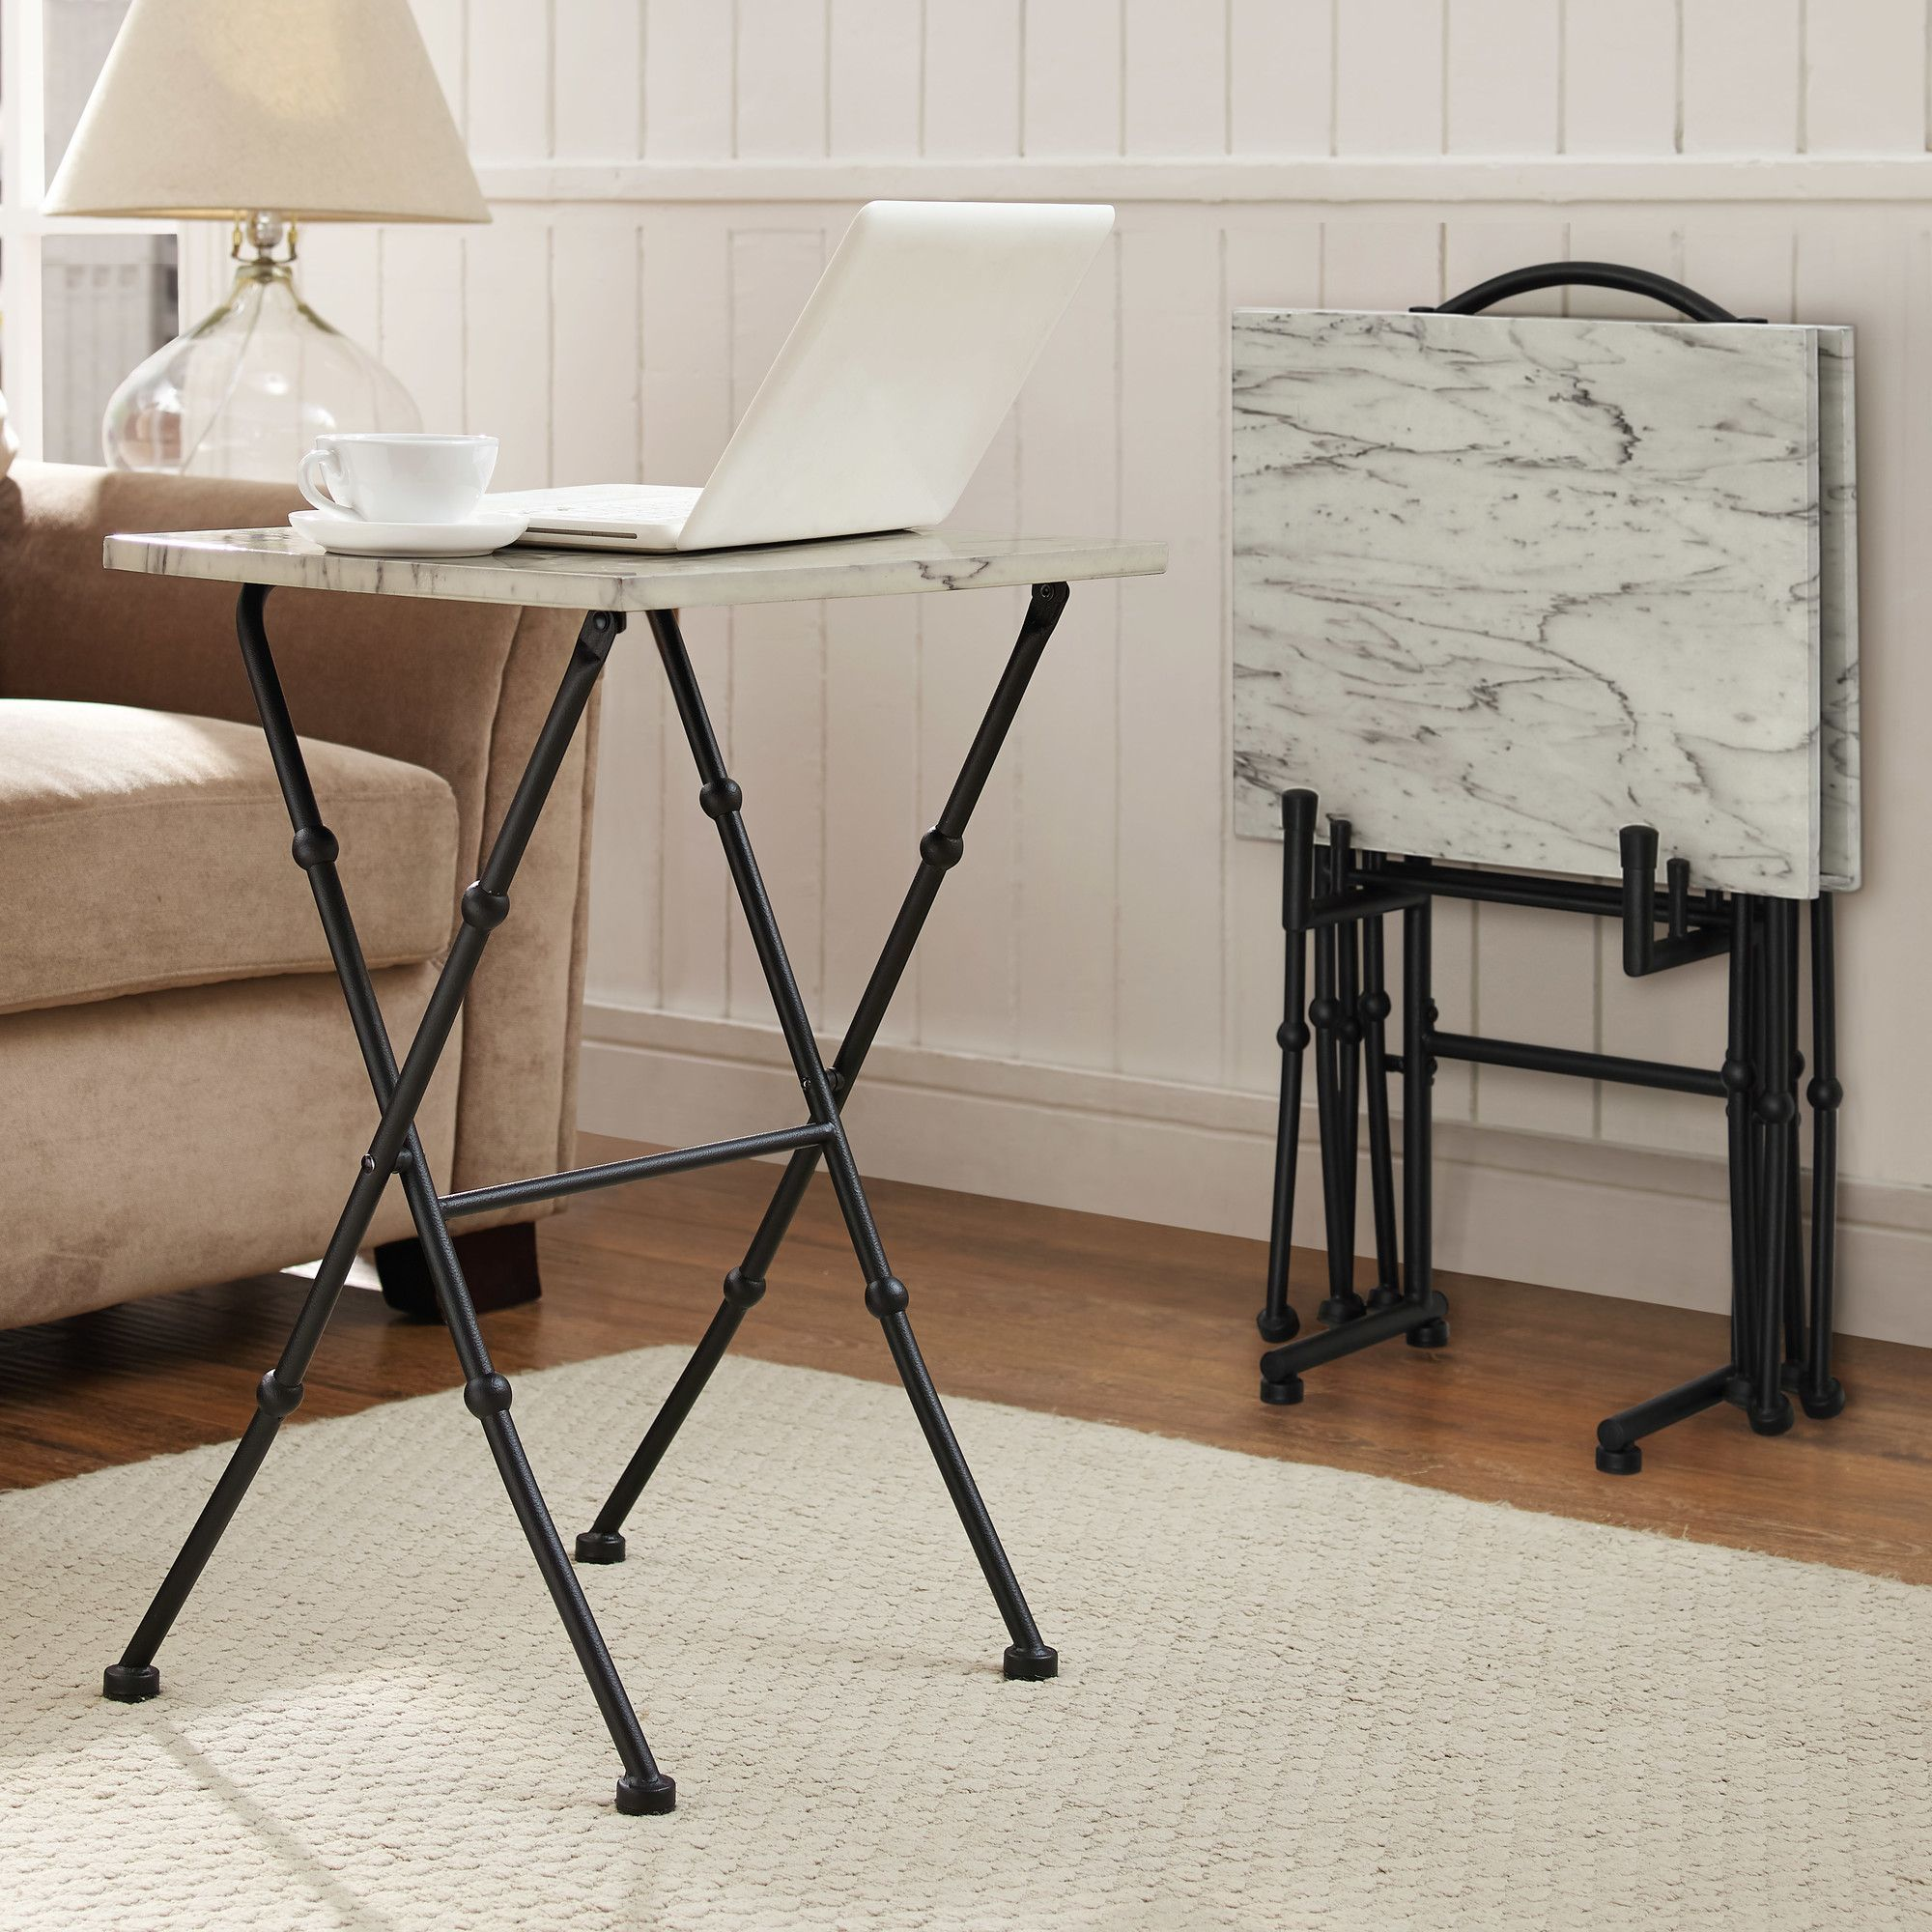 Ordinaire Burnside 4 Piece Marble Tray Table Set